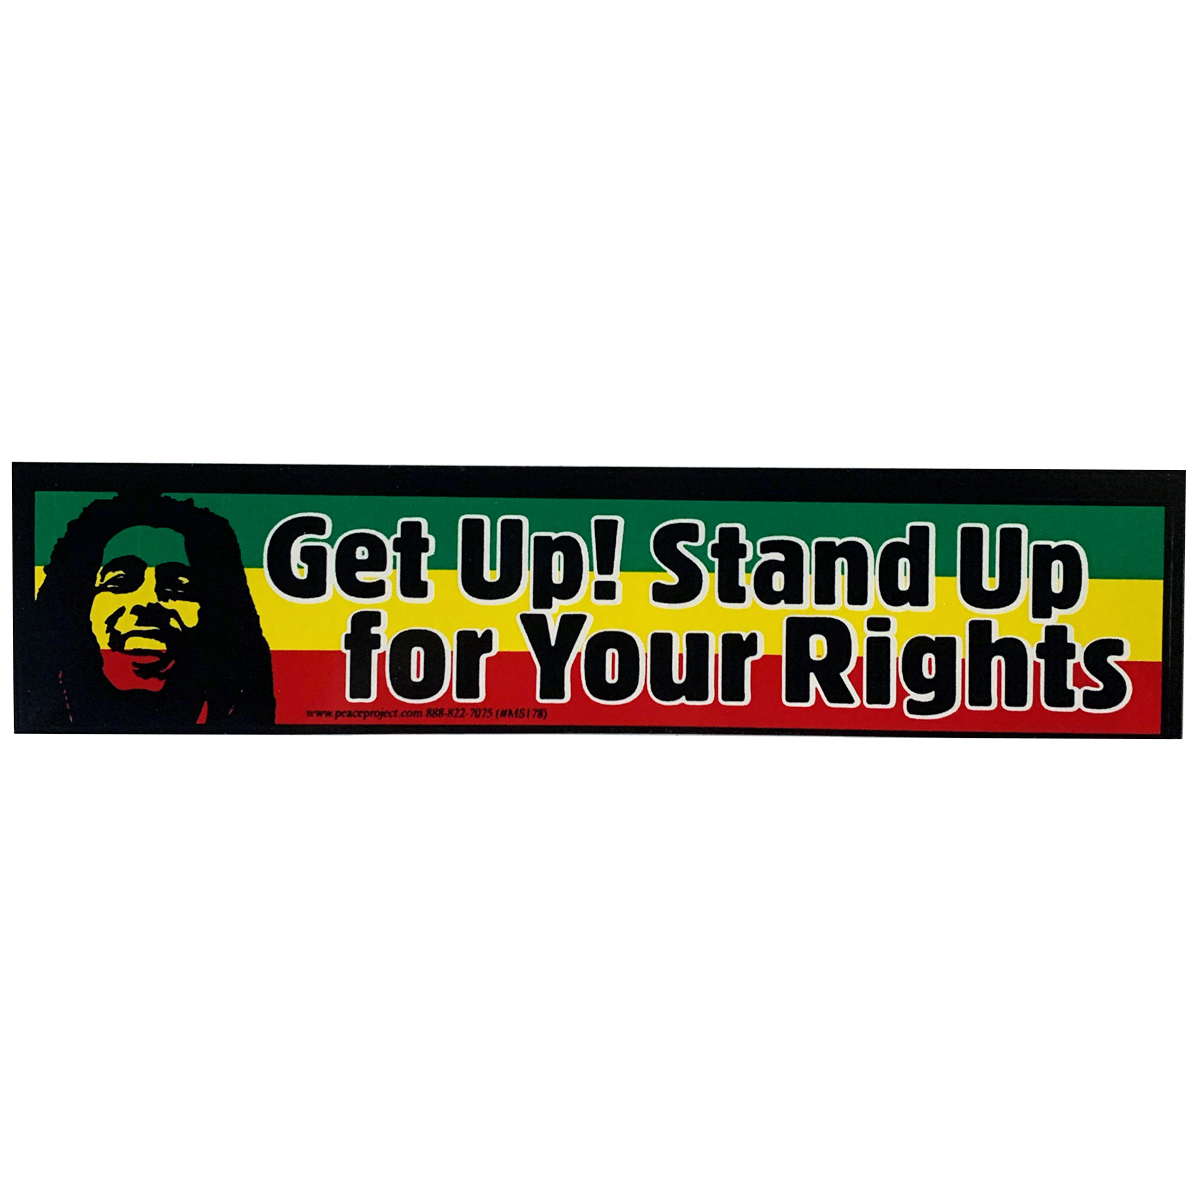 Get up stand up for your rights sticker